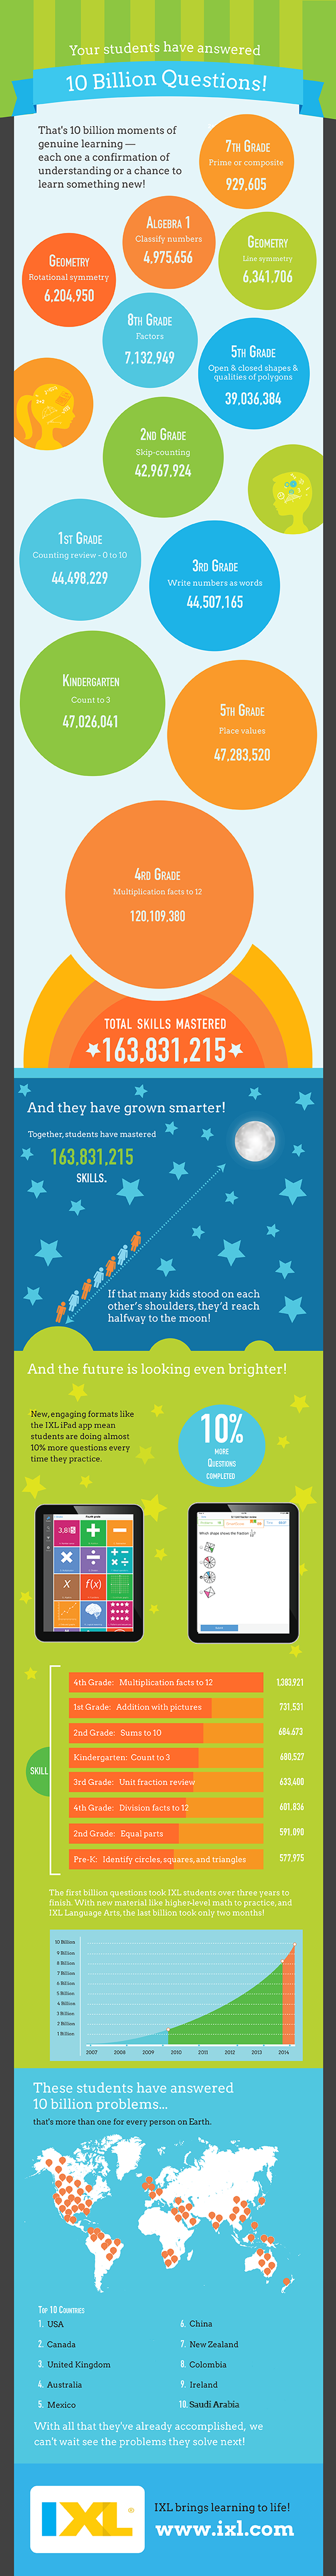 IXL Insights – 10 Billion Questions